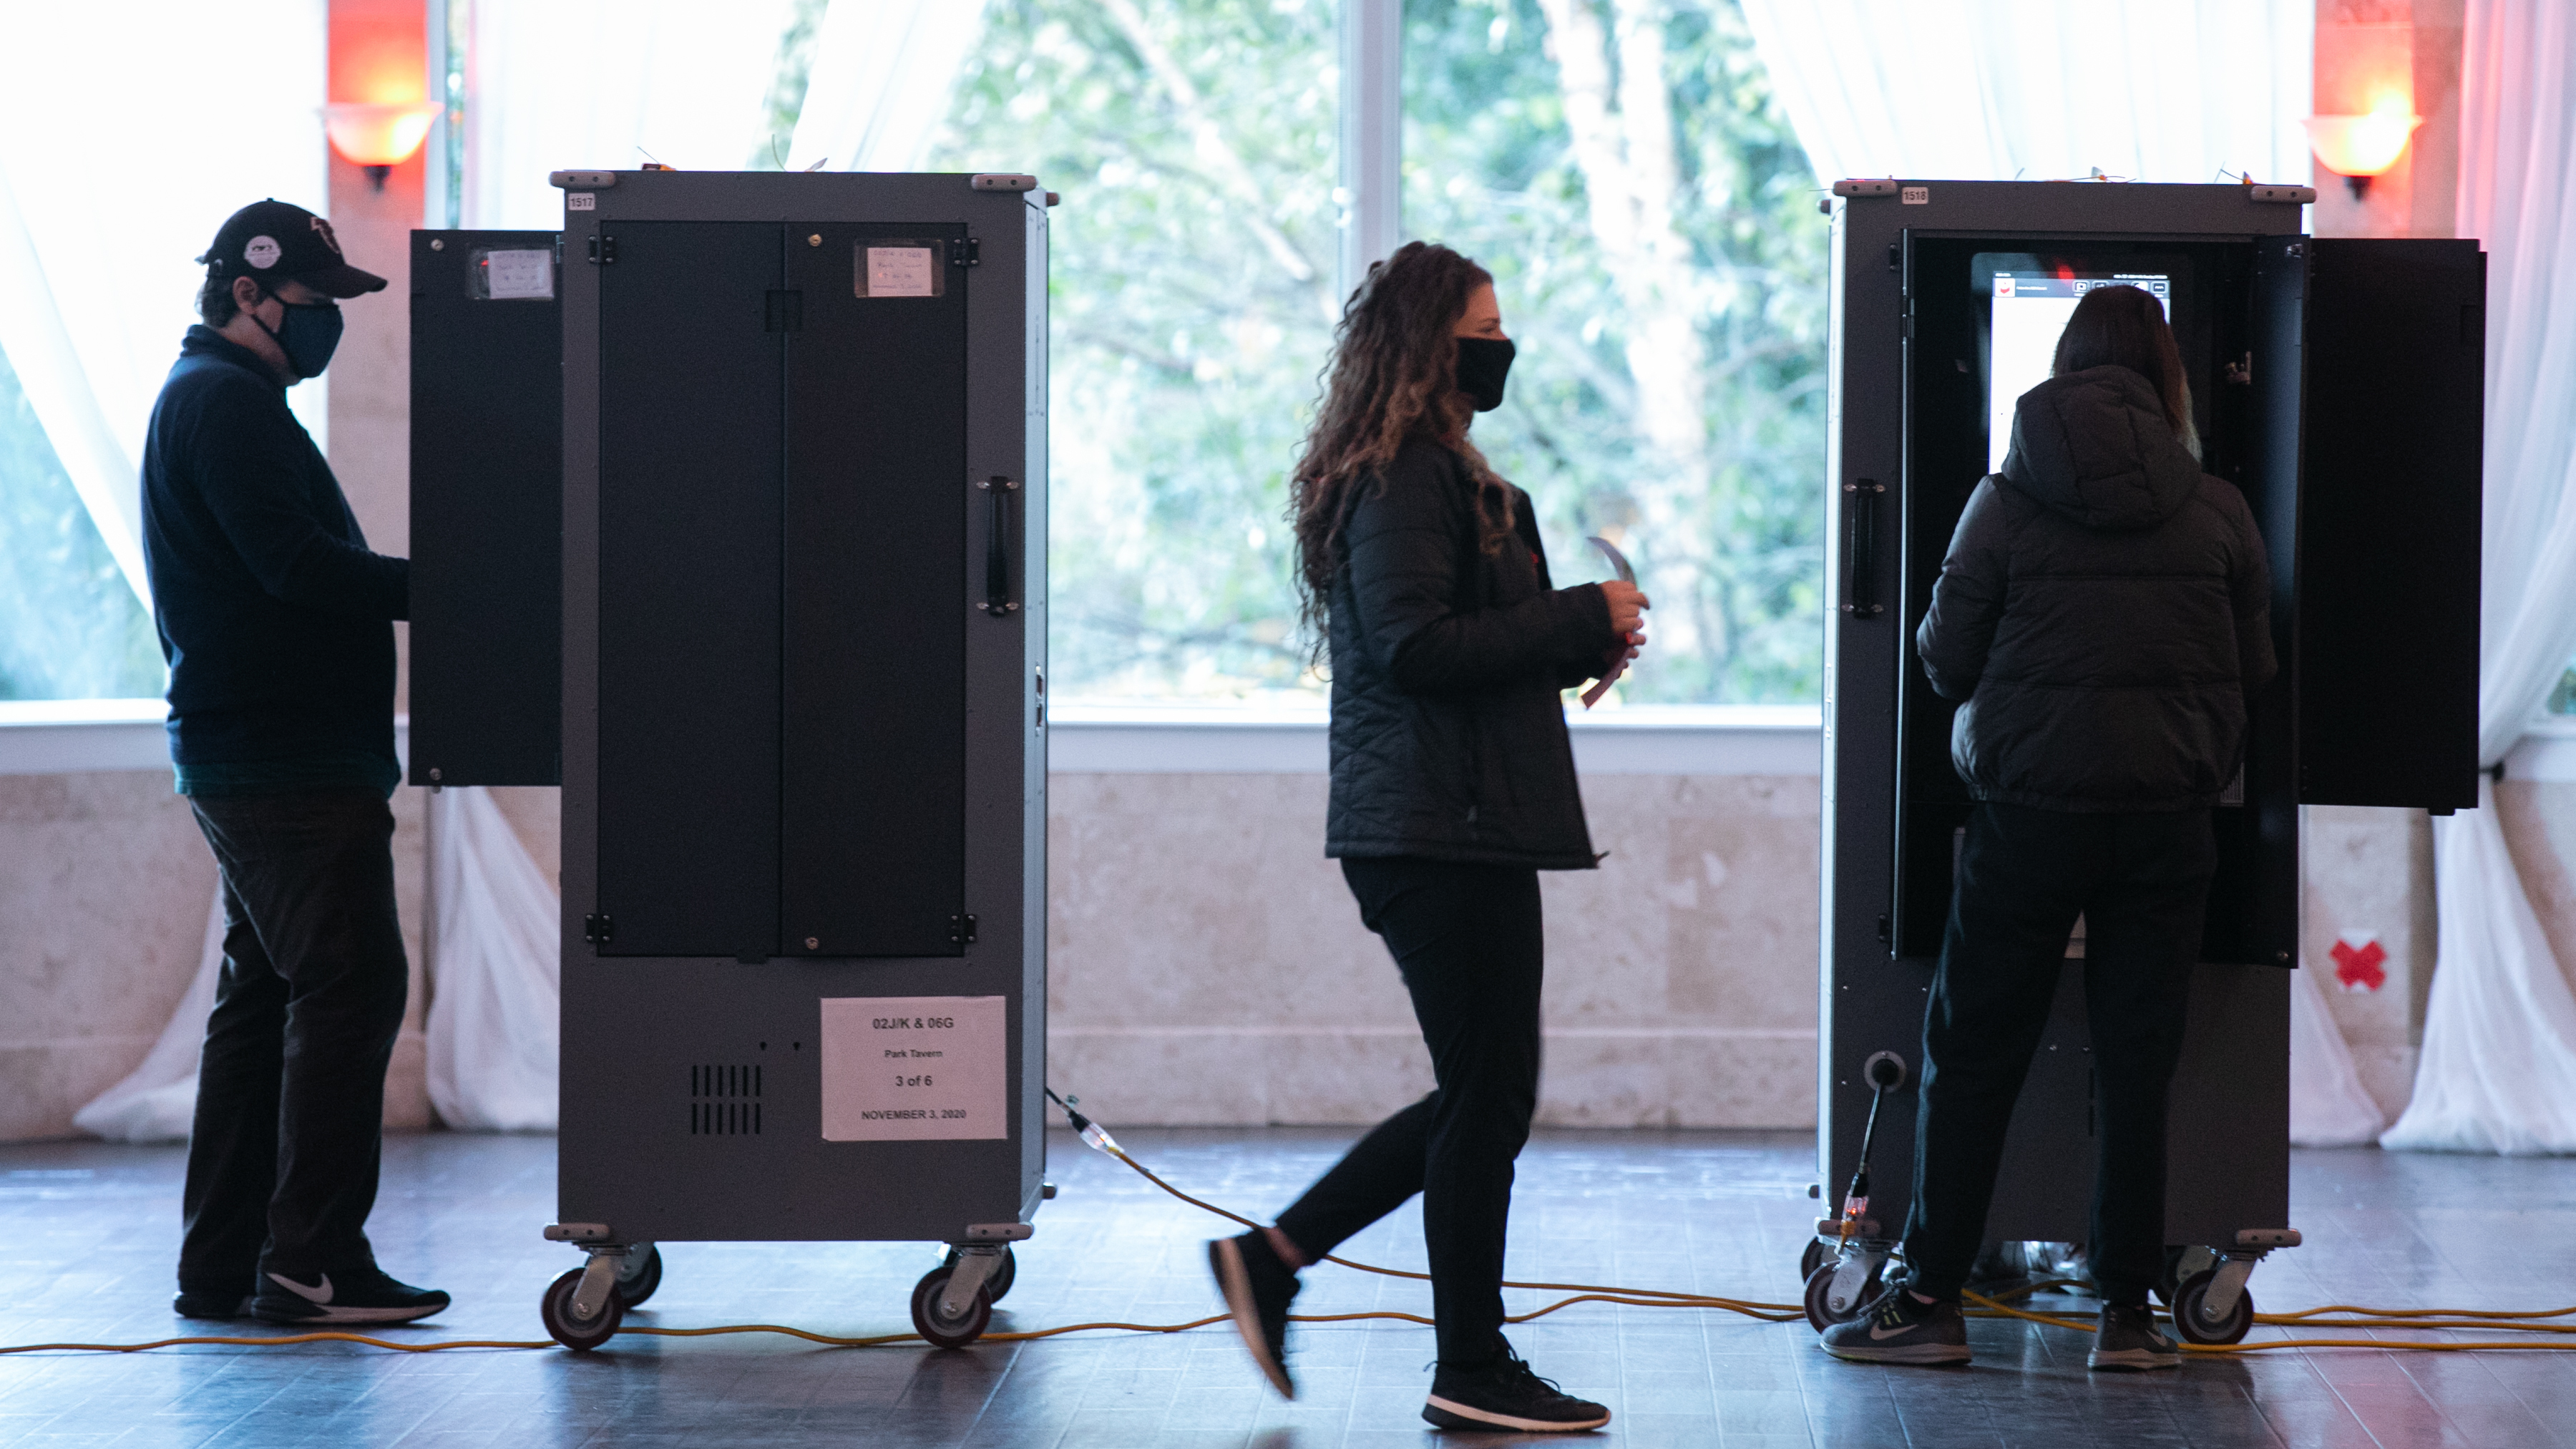 Voters cast ballots Tuesday at the Park Tavern polling station in Atlanta.